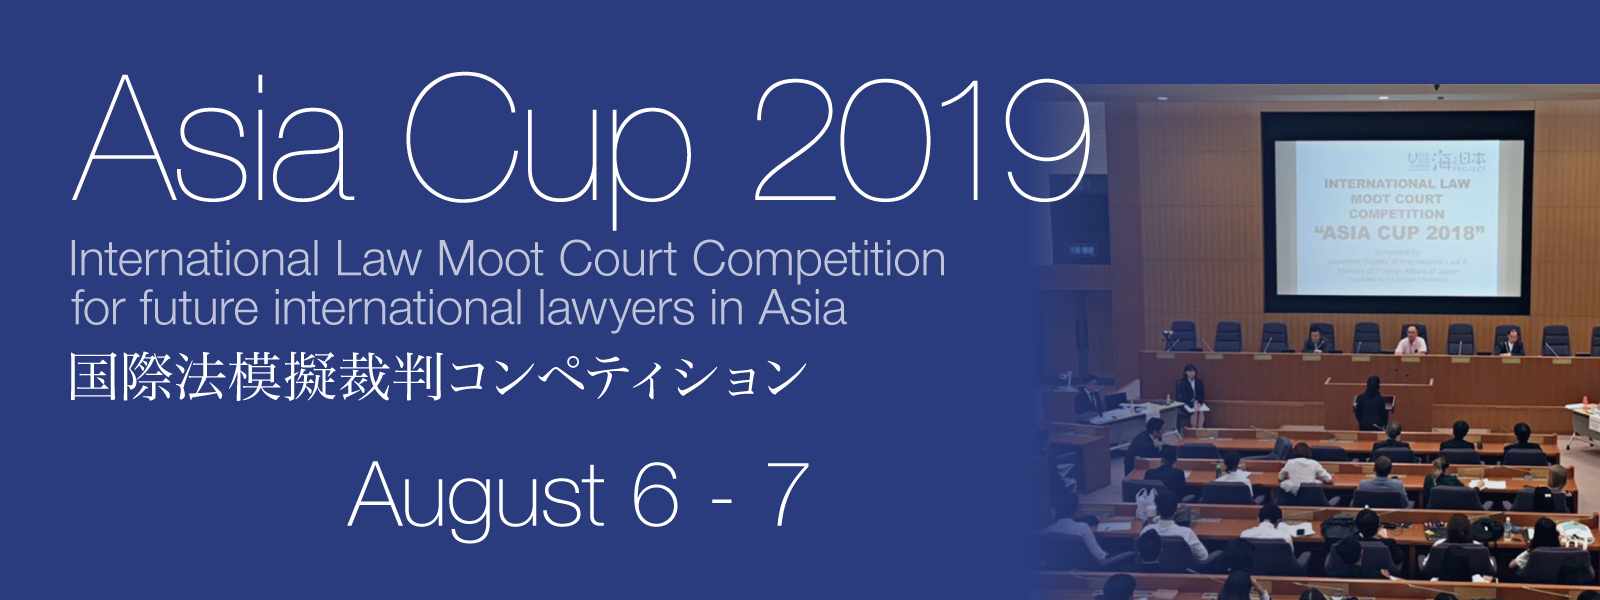 Asia cup 2018 -August28-29 2018 TOKYO-